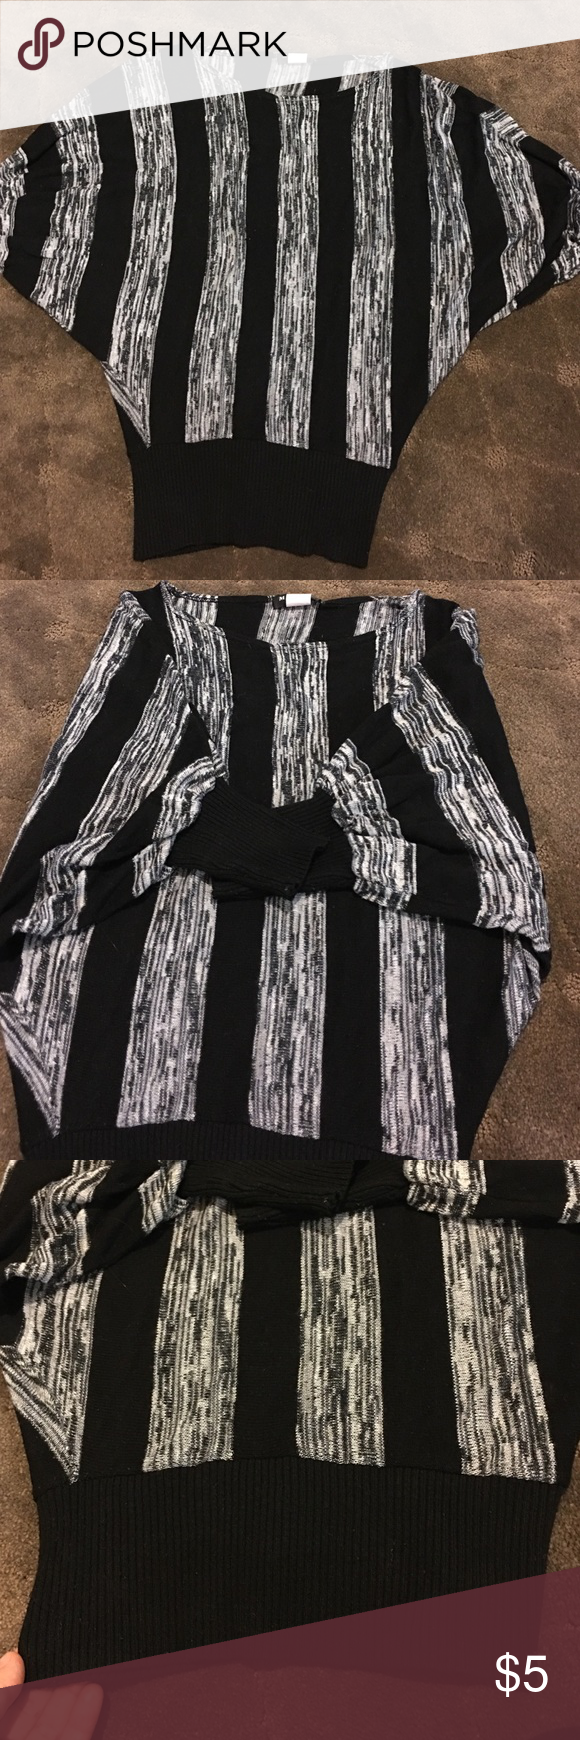 Cute top Pre loved good condition size M Tops